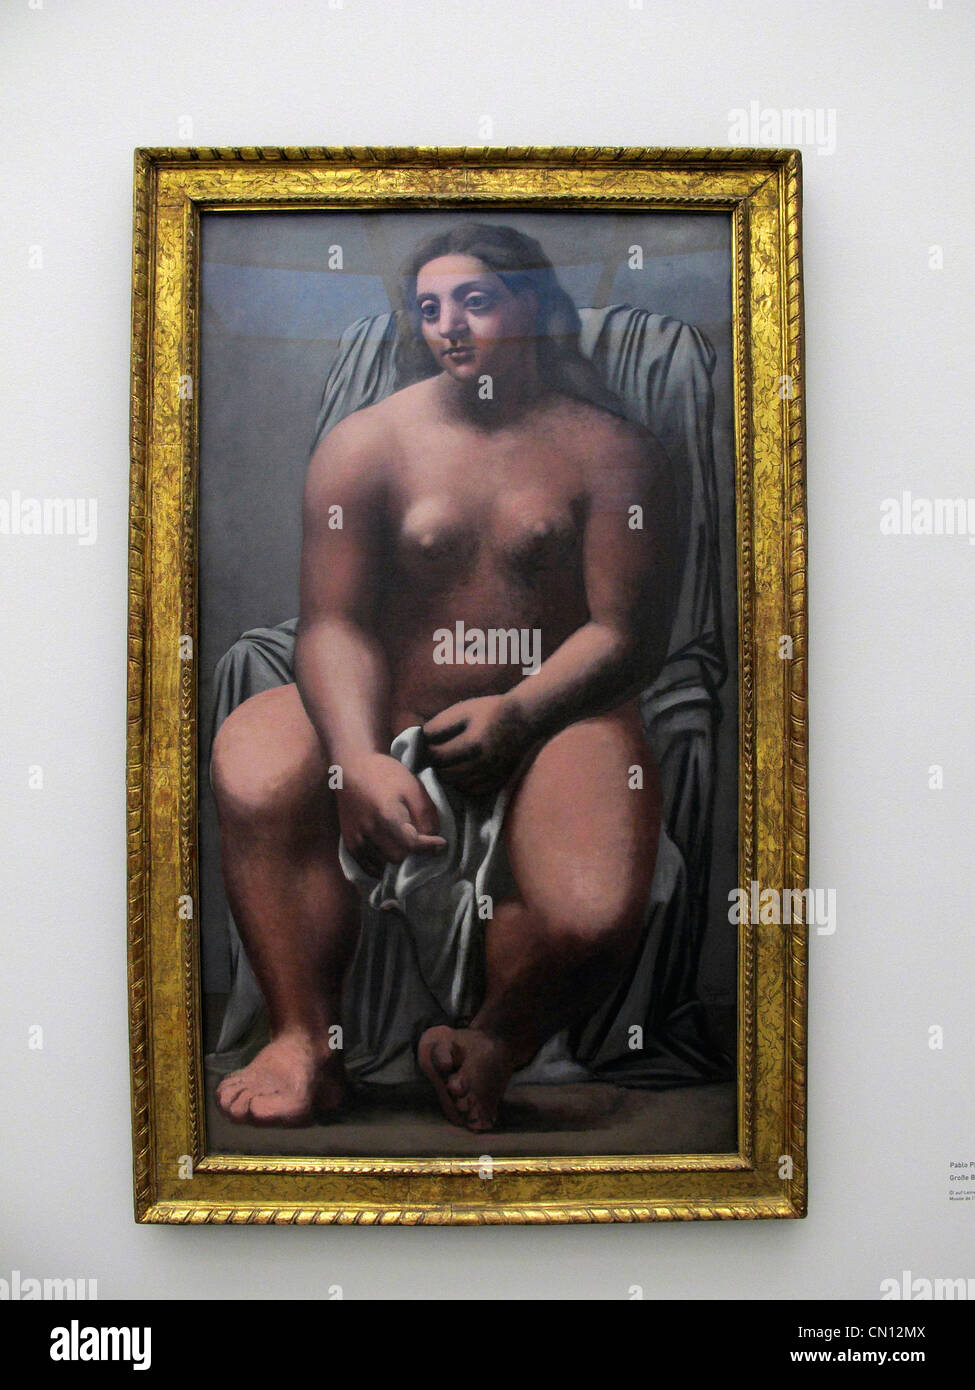 Germany Munich Pinakothek der Moderne 'Women' Picasso Beckmann De Kooning 2012 March. Large Bather 1921 - Stock Image